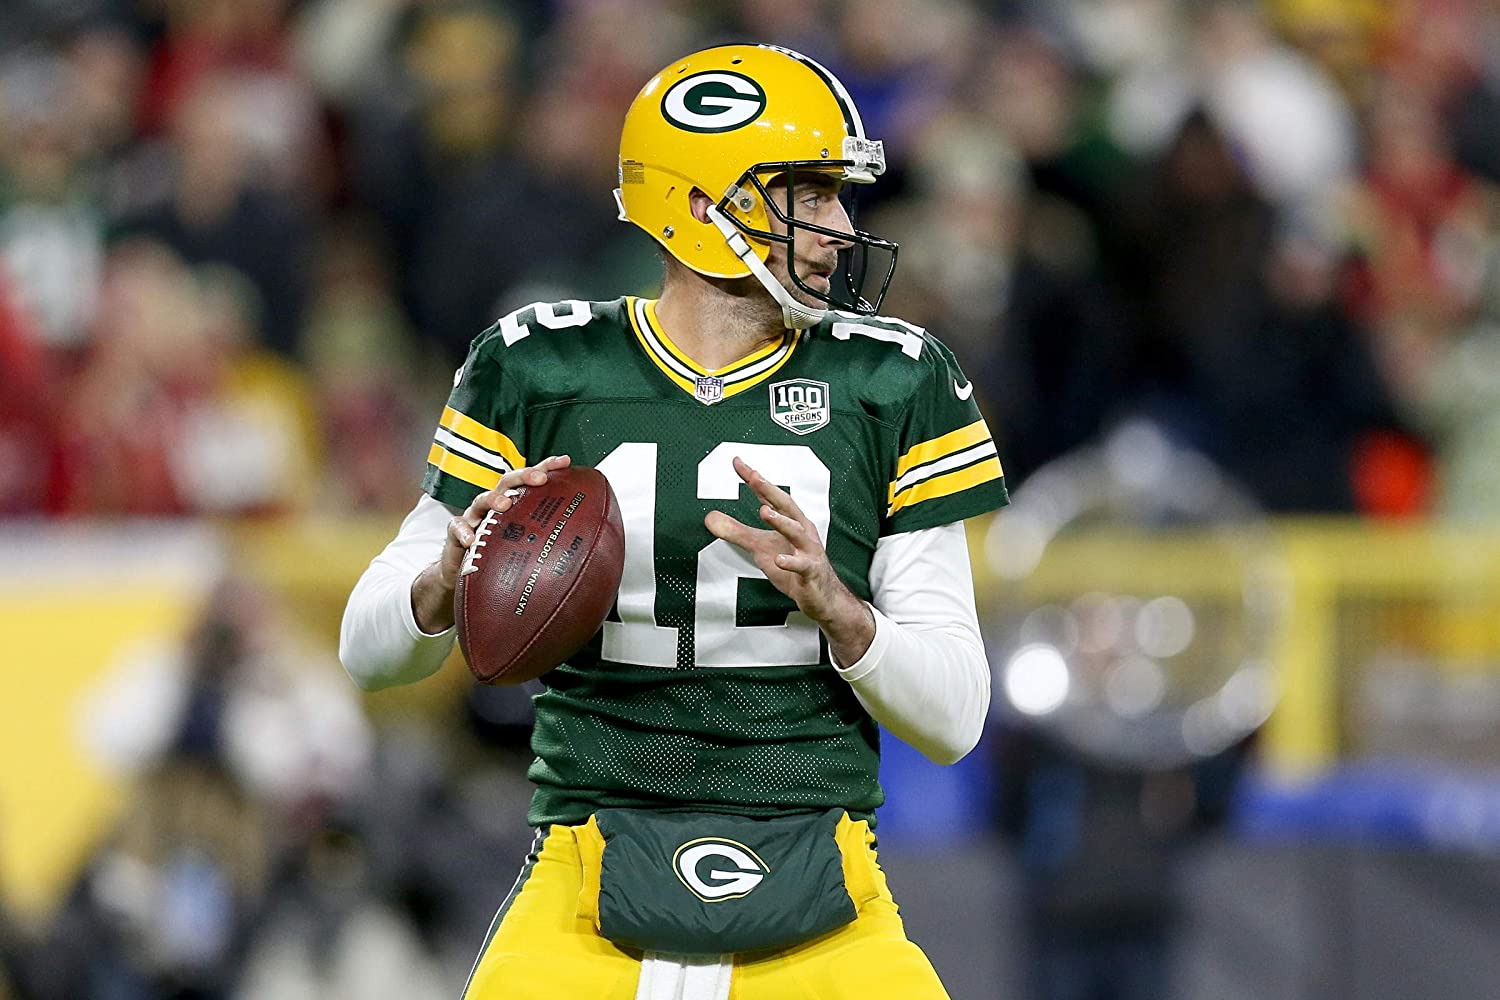 Aaron Rodgers Green Bay Packers Poster Print, American Football Player, Aaron Rodgers Decor, Real Player, Posters for Wall, Canvas Art, ArtWork SIZE 24''x32'' (61x81 cm)